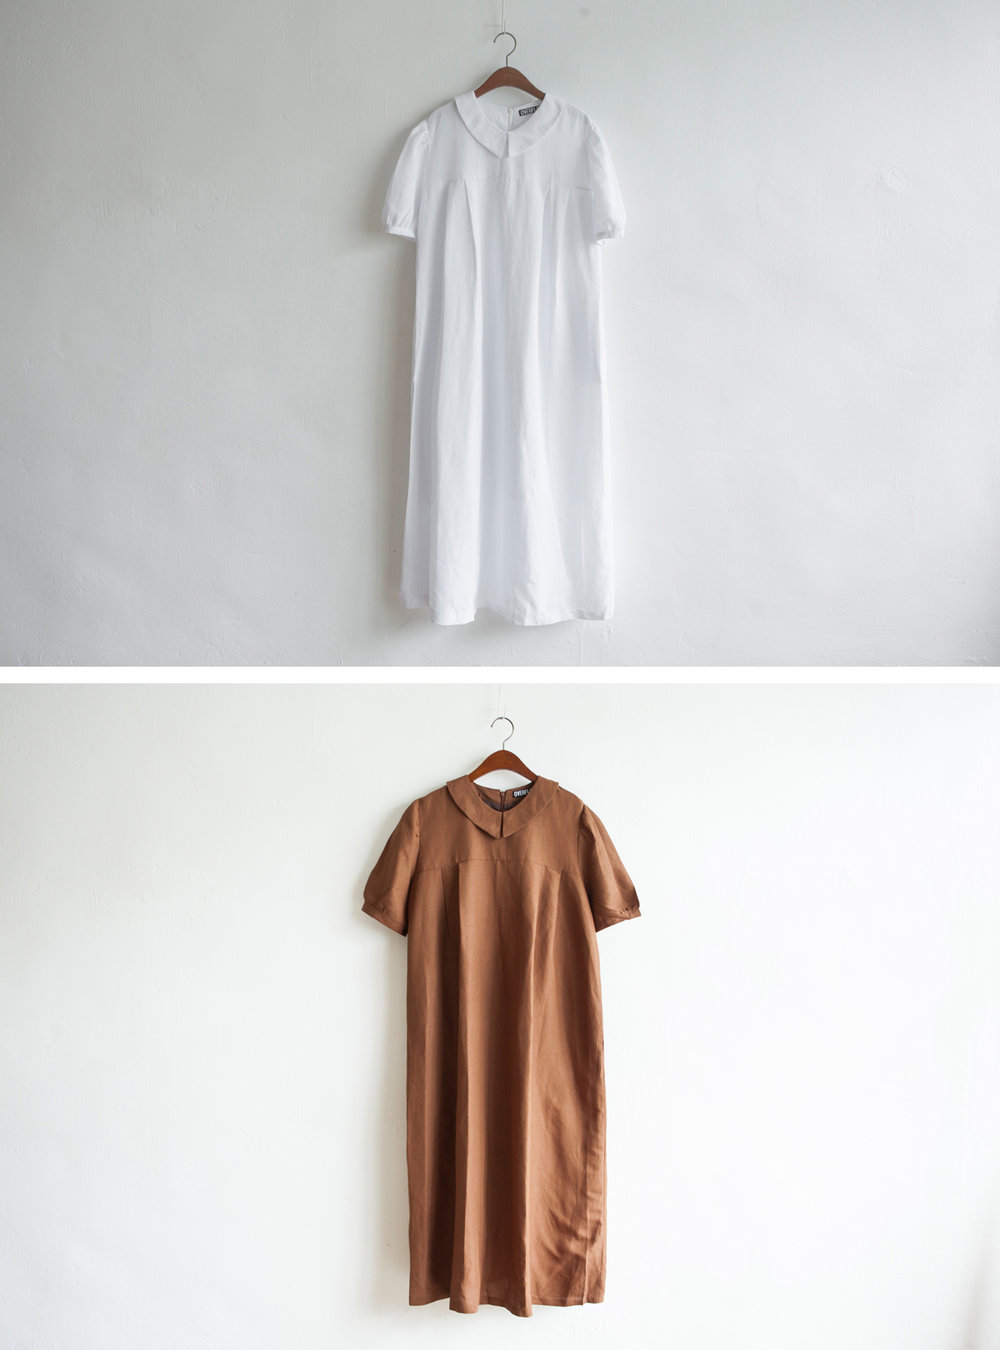 NBOA352 evie pointy collar dress    early bird price: HK$398 / NT$1710    regular price: HK$468 / NT$2010    color: white / brown    made in korea     measurement (cm) shoulder 40 bust 105 length 125 waist 105 hip 130 sleeves 29